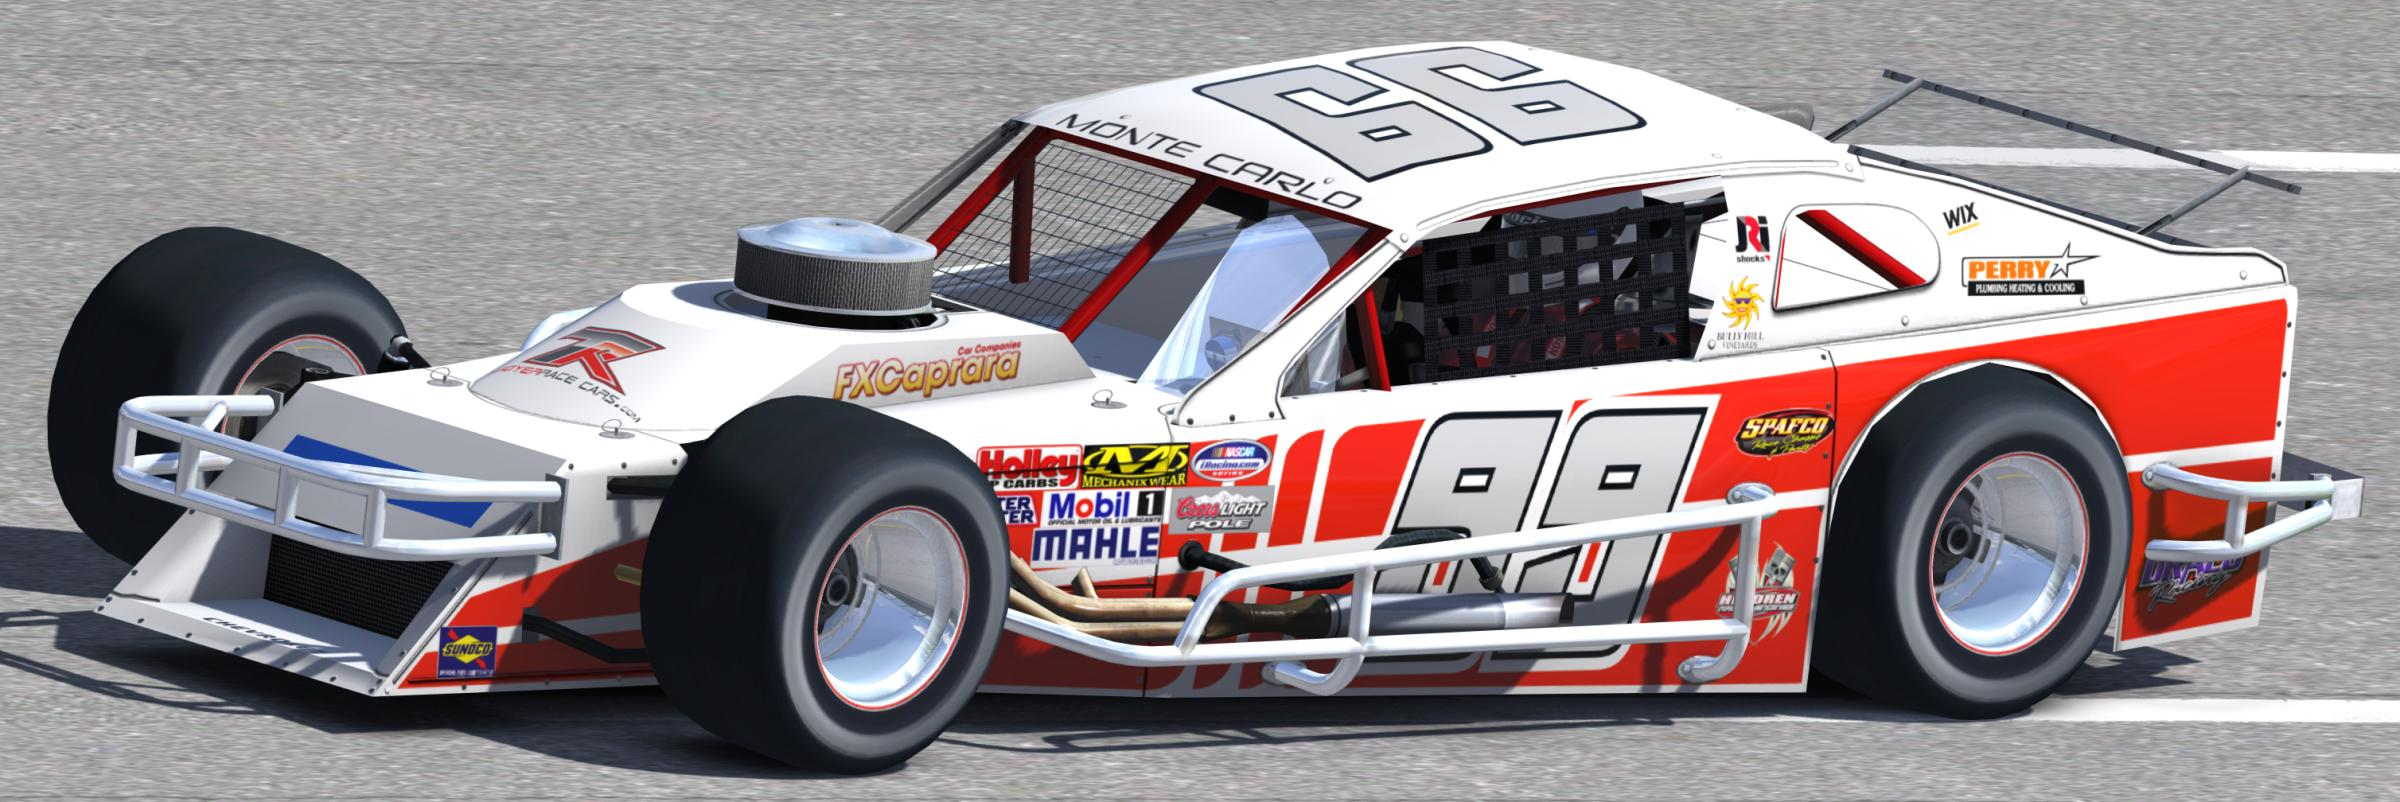 Troyer Race Cars: Maynard Troyer Throwback Inspired Scheme By Greg N